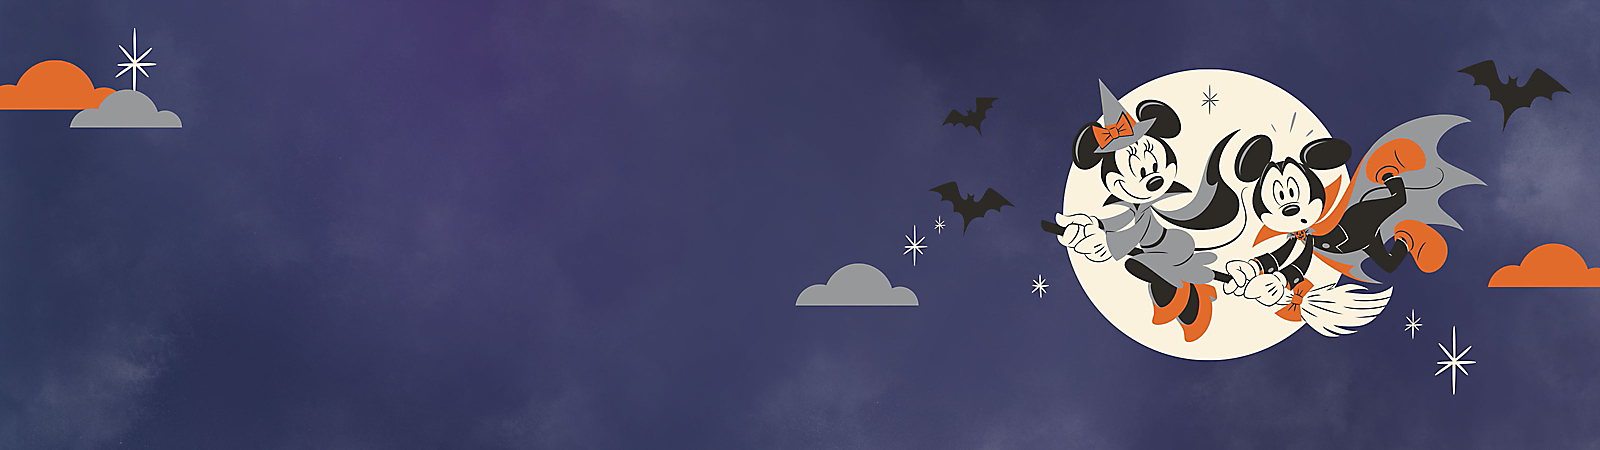 Background image of Halloween Accessories